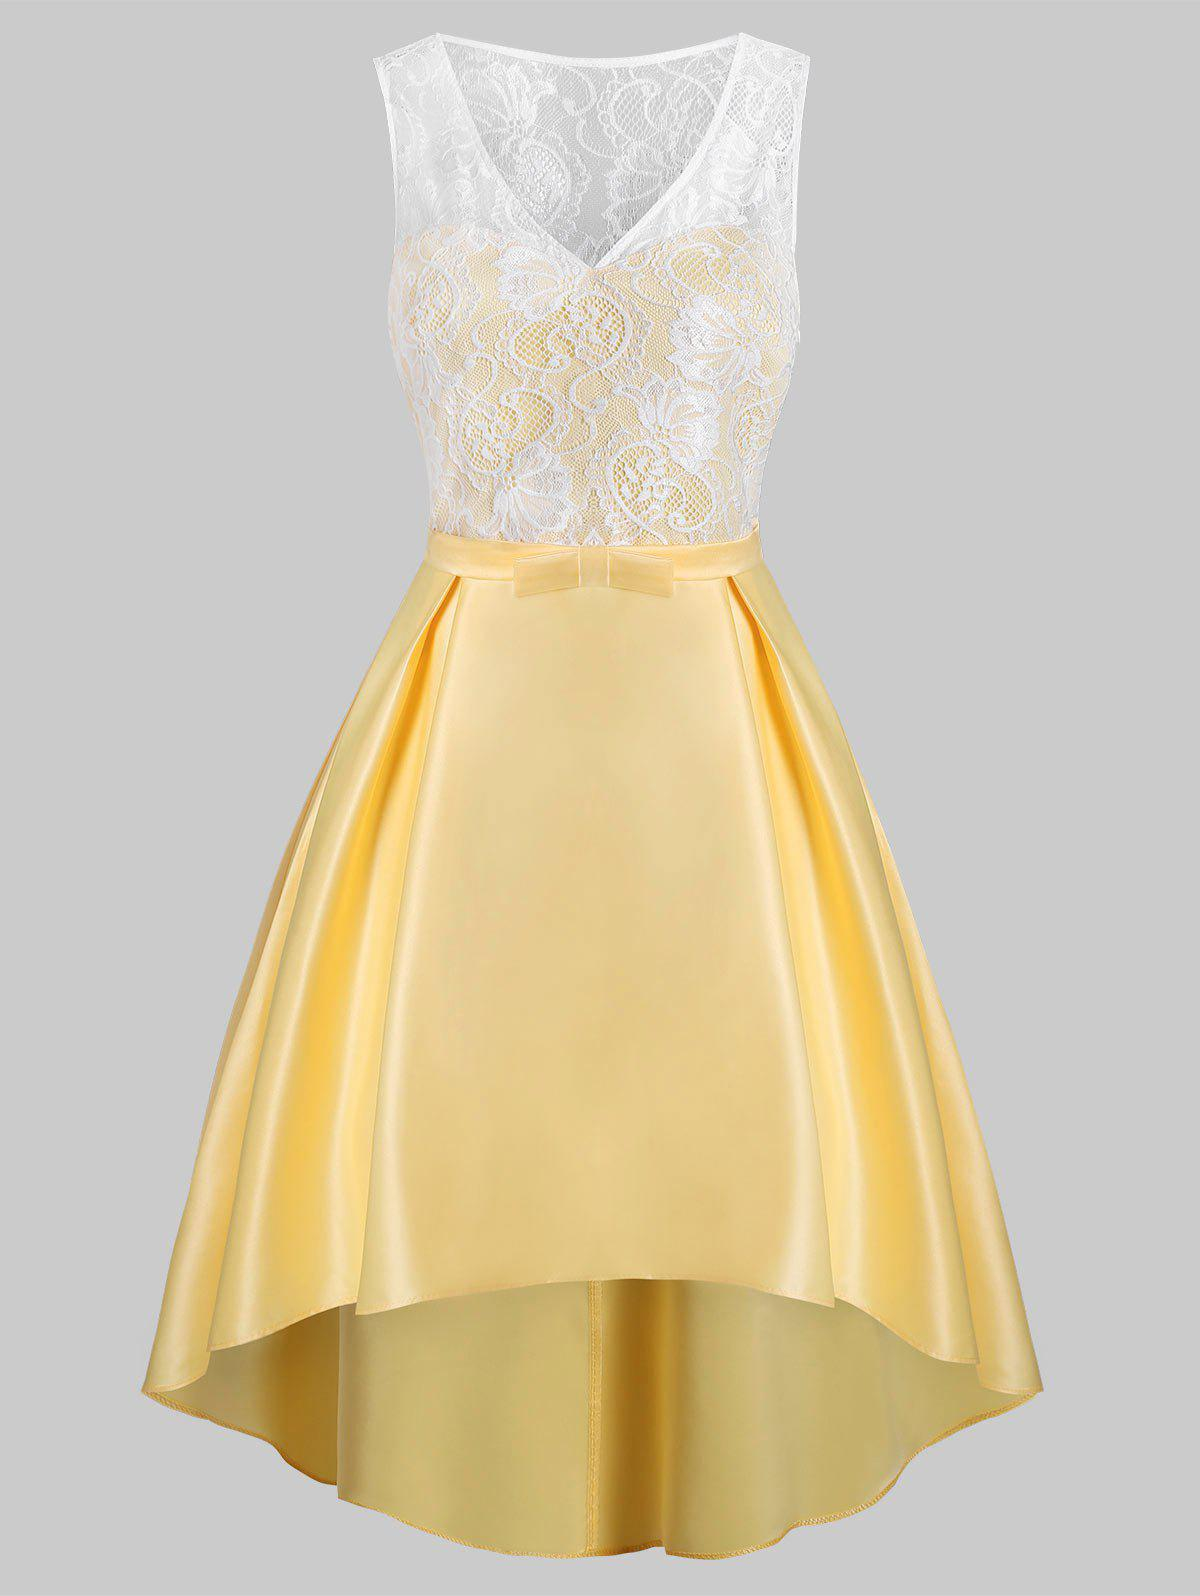 Lace Insert Belted High Low Party Dress - YELLOW L